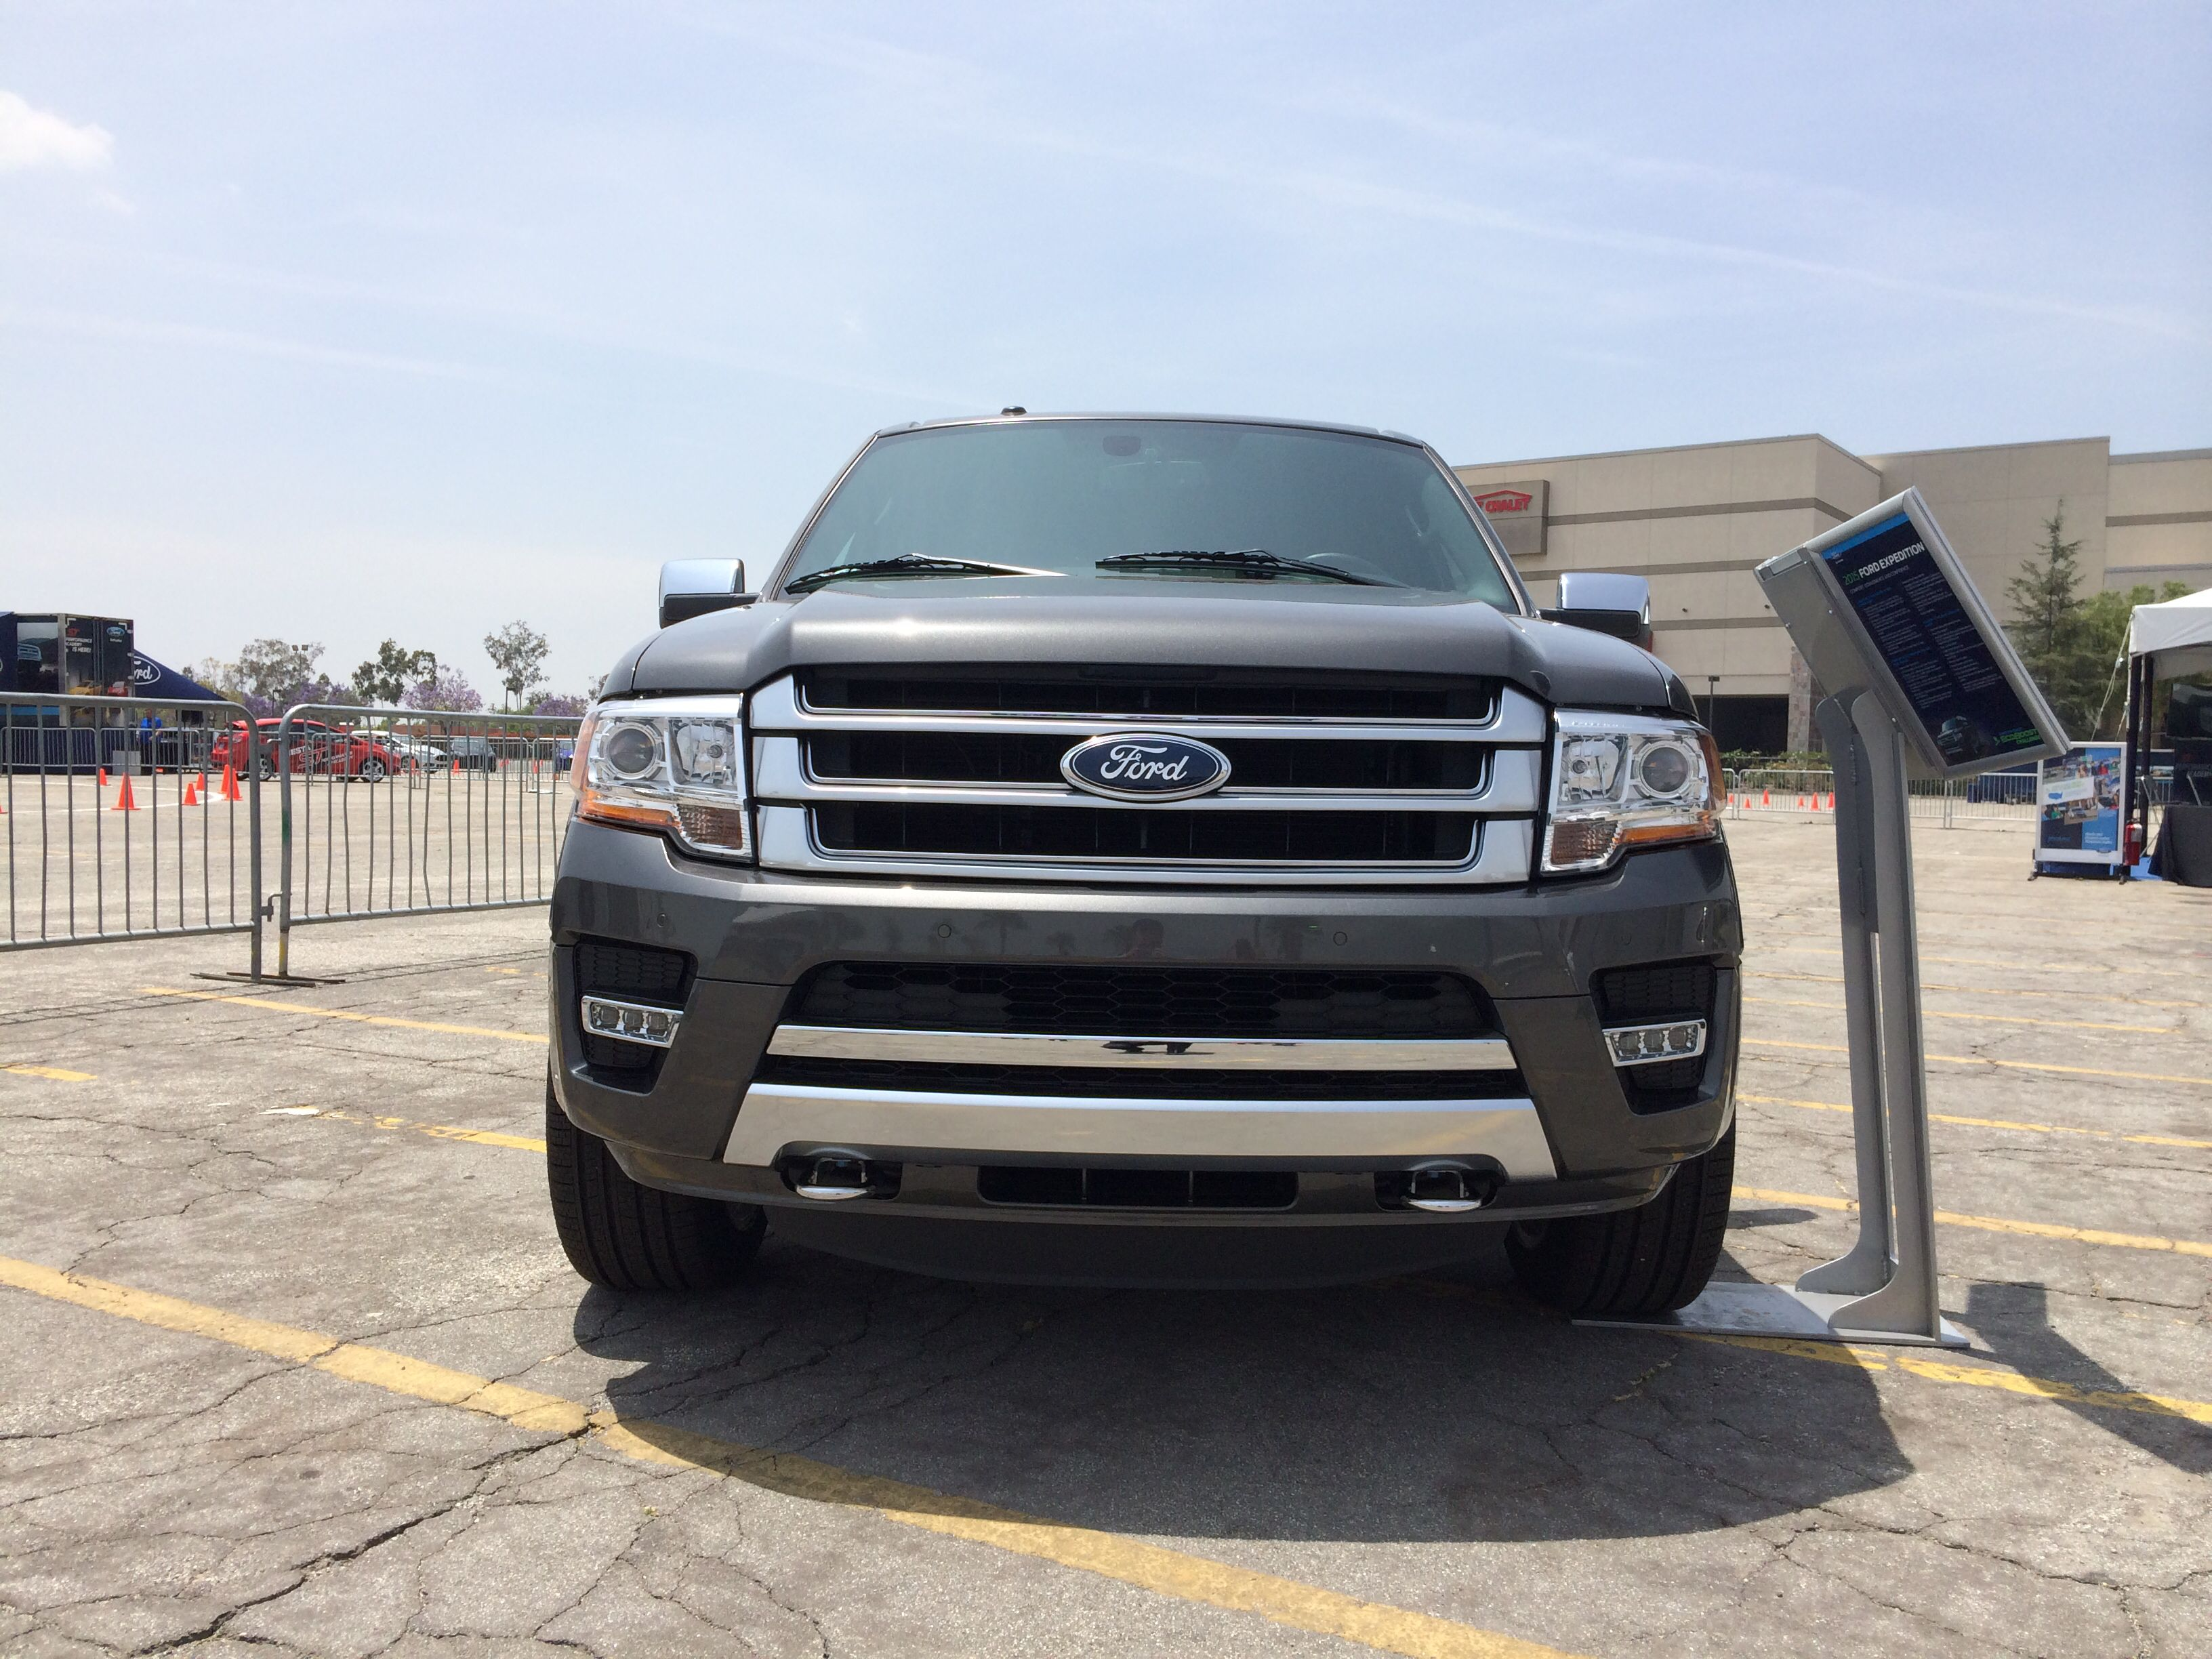 2015 ford expedition first drive ford rugged project ideas pinterest ford expedition ford and ford explorer